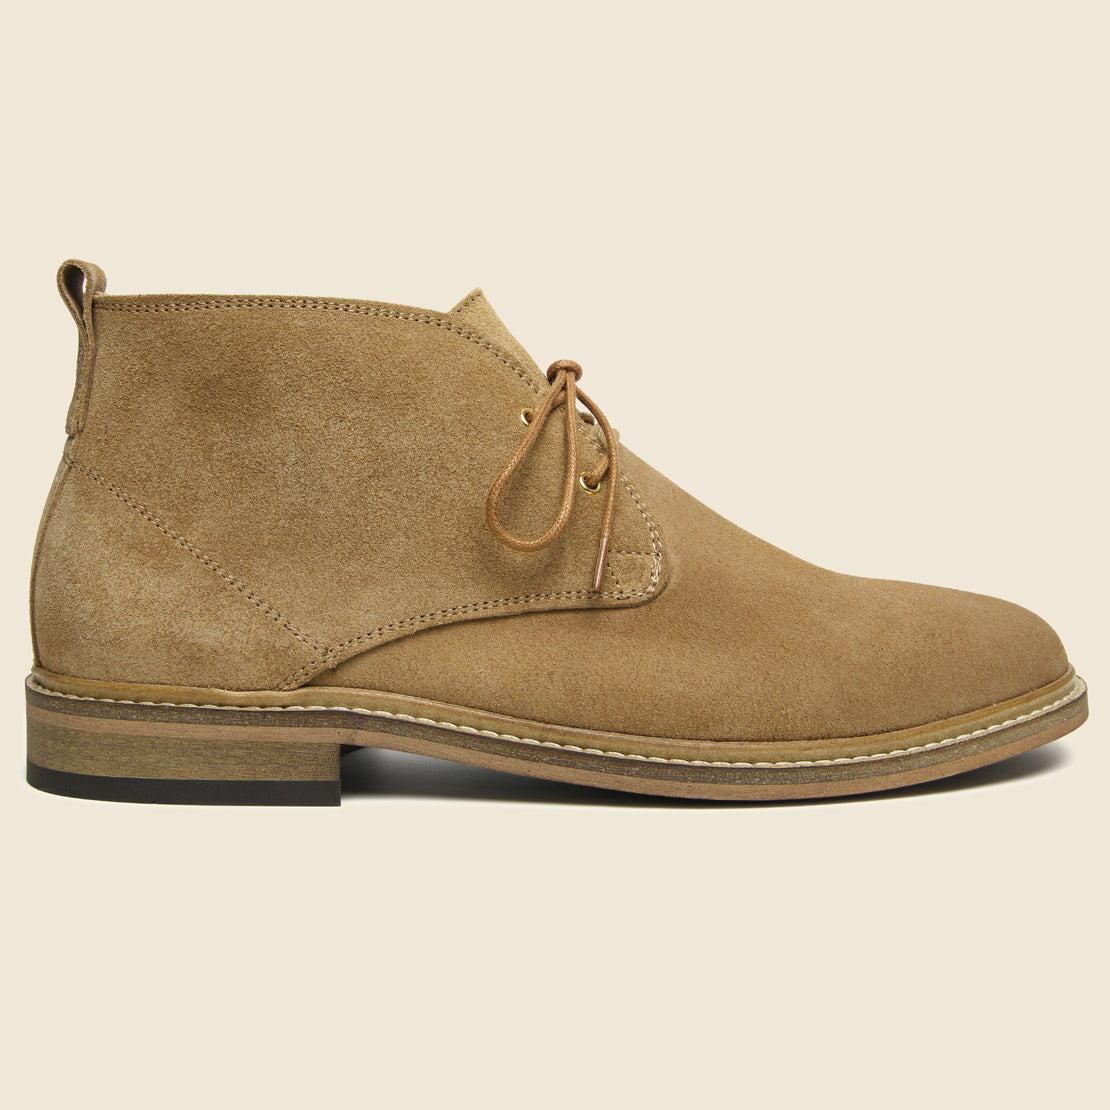 Shoe the Bear Caleb Suede Chukka - Camel